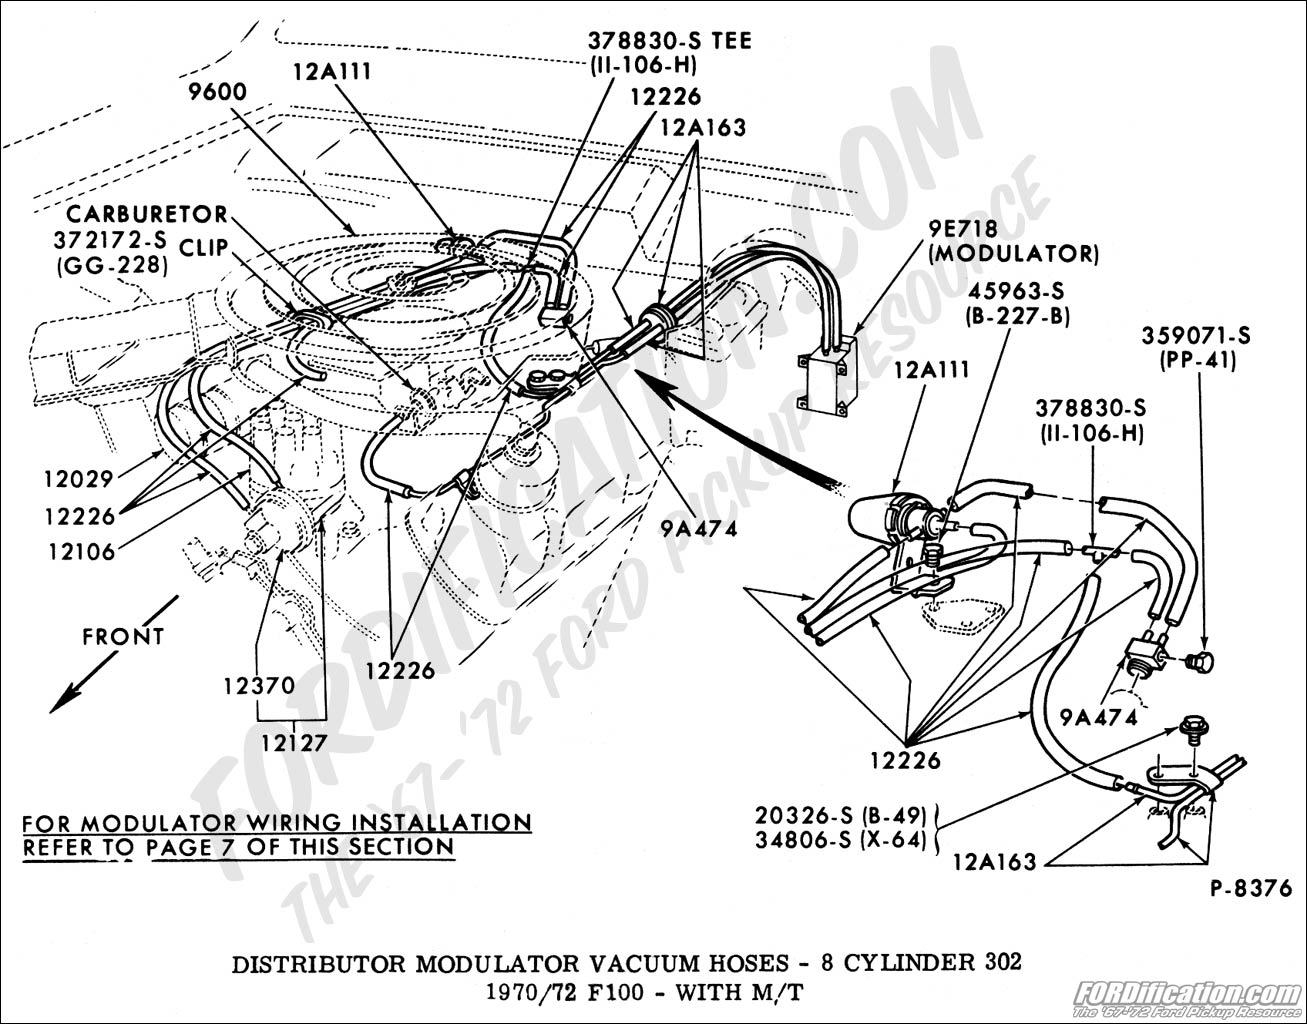 Heater Diagram For 1999 Chevy S 10 Wire Data Schema 2002 S10 Pick Up Wiring Window Ford Truck Technical Drawings And Schematics Section I Extra Cab 4x4